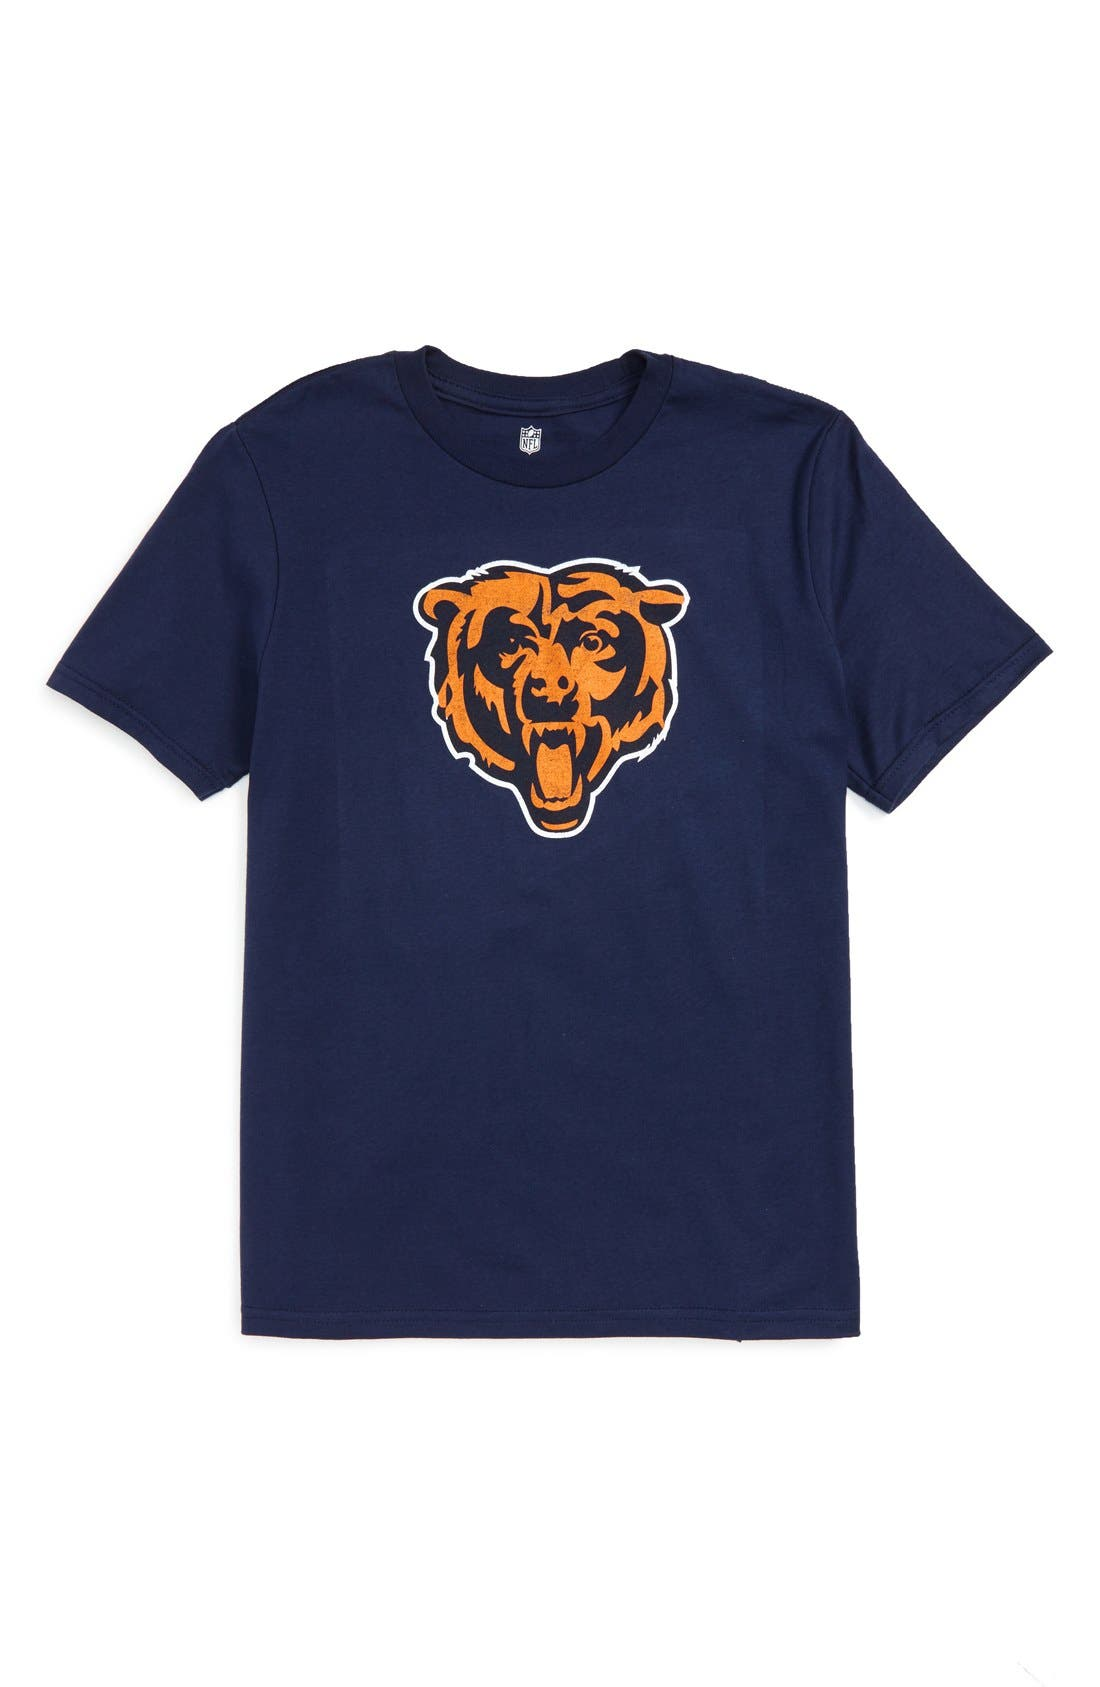 'NFL - Chicago Bears' Distressed Logo Graphic T-Shirt,                         Main,                         color, 410